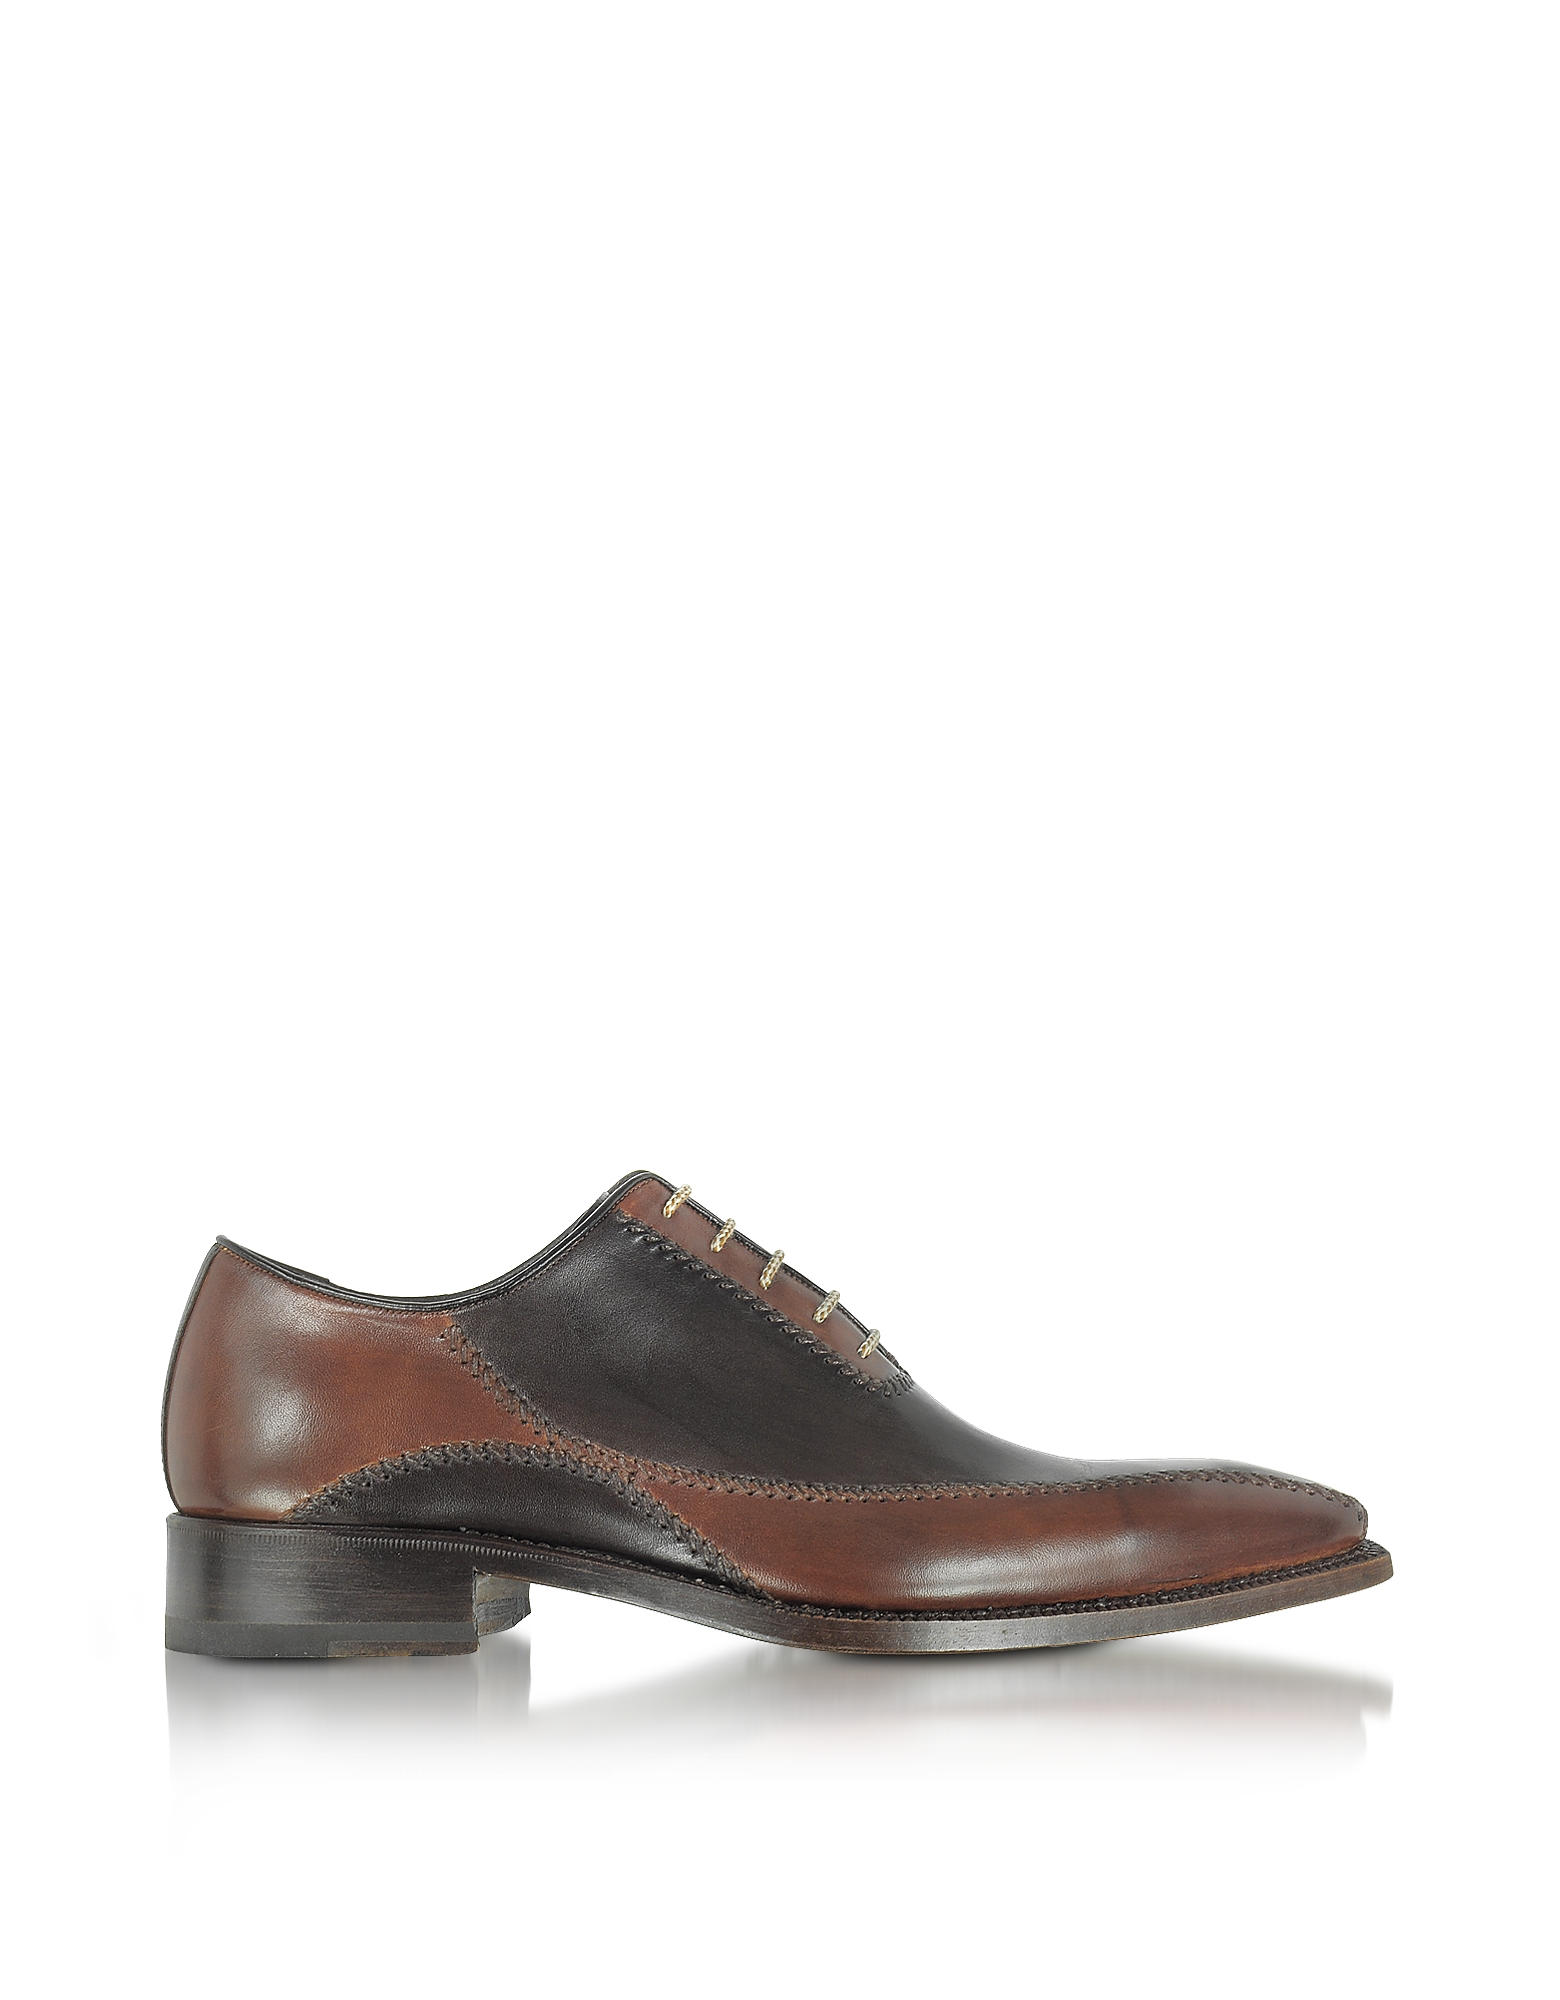 Forzieri Shoes, Dark Brown Italian Handcrafted Leather Oxford Shoes